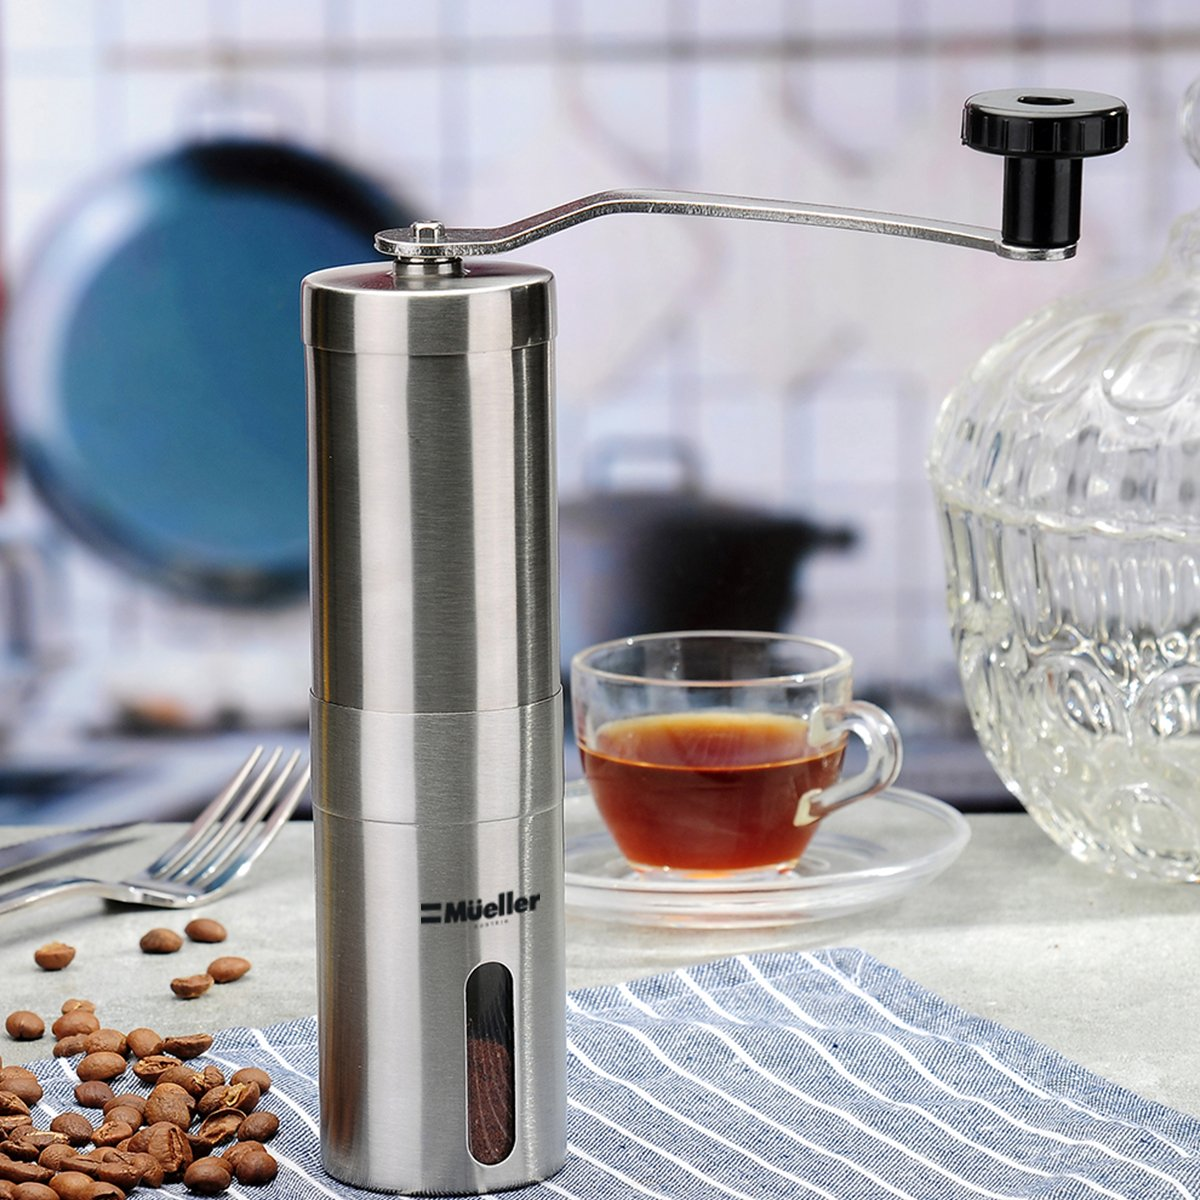 Mueller Ultra-Grind - Strongest and Heaviest Duty Portable Conical Burr Mill, Whole Bean Manual Coffee Grinder for French Press, Turkish, Handheld Mini, K Cup, Brushed Stainless Steel by Mueller Austria (Image #2)